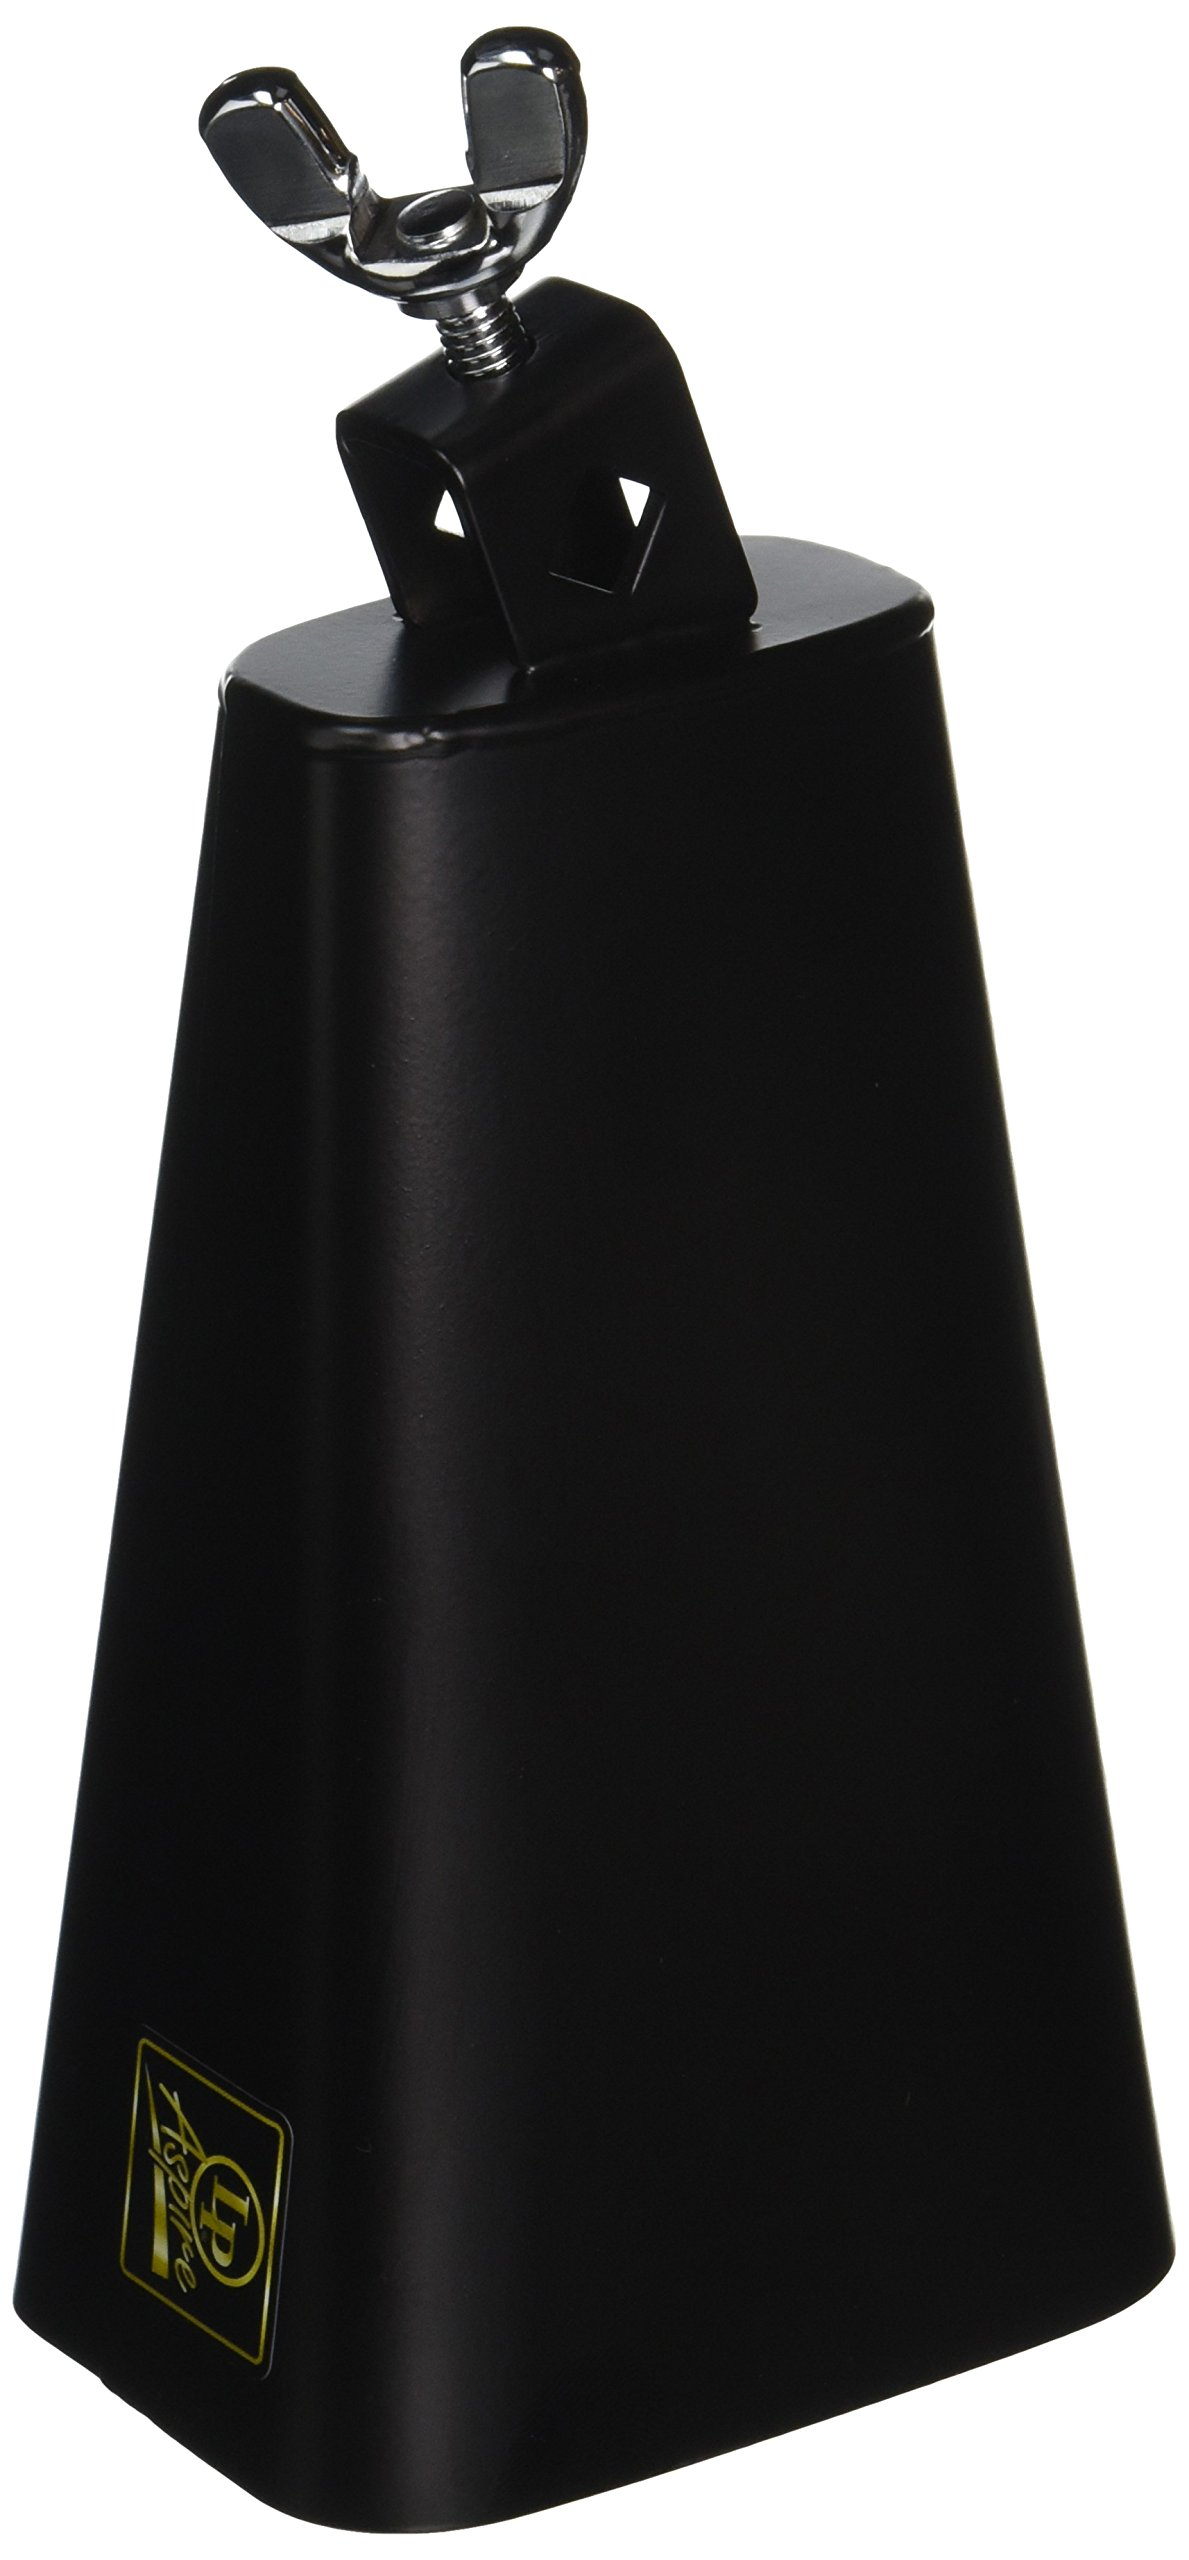 Latin Percussion LPA406 Timbale Cowbell 6 7/8 Inch